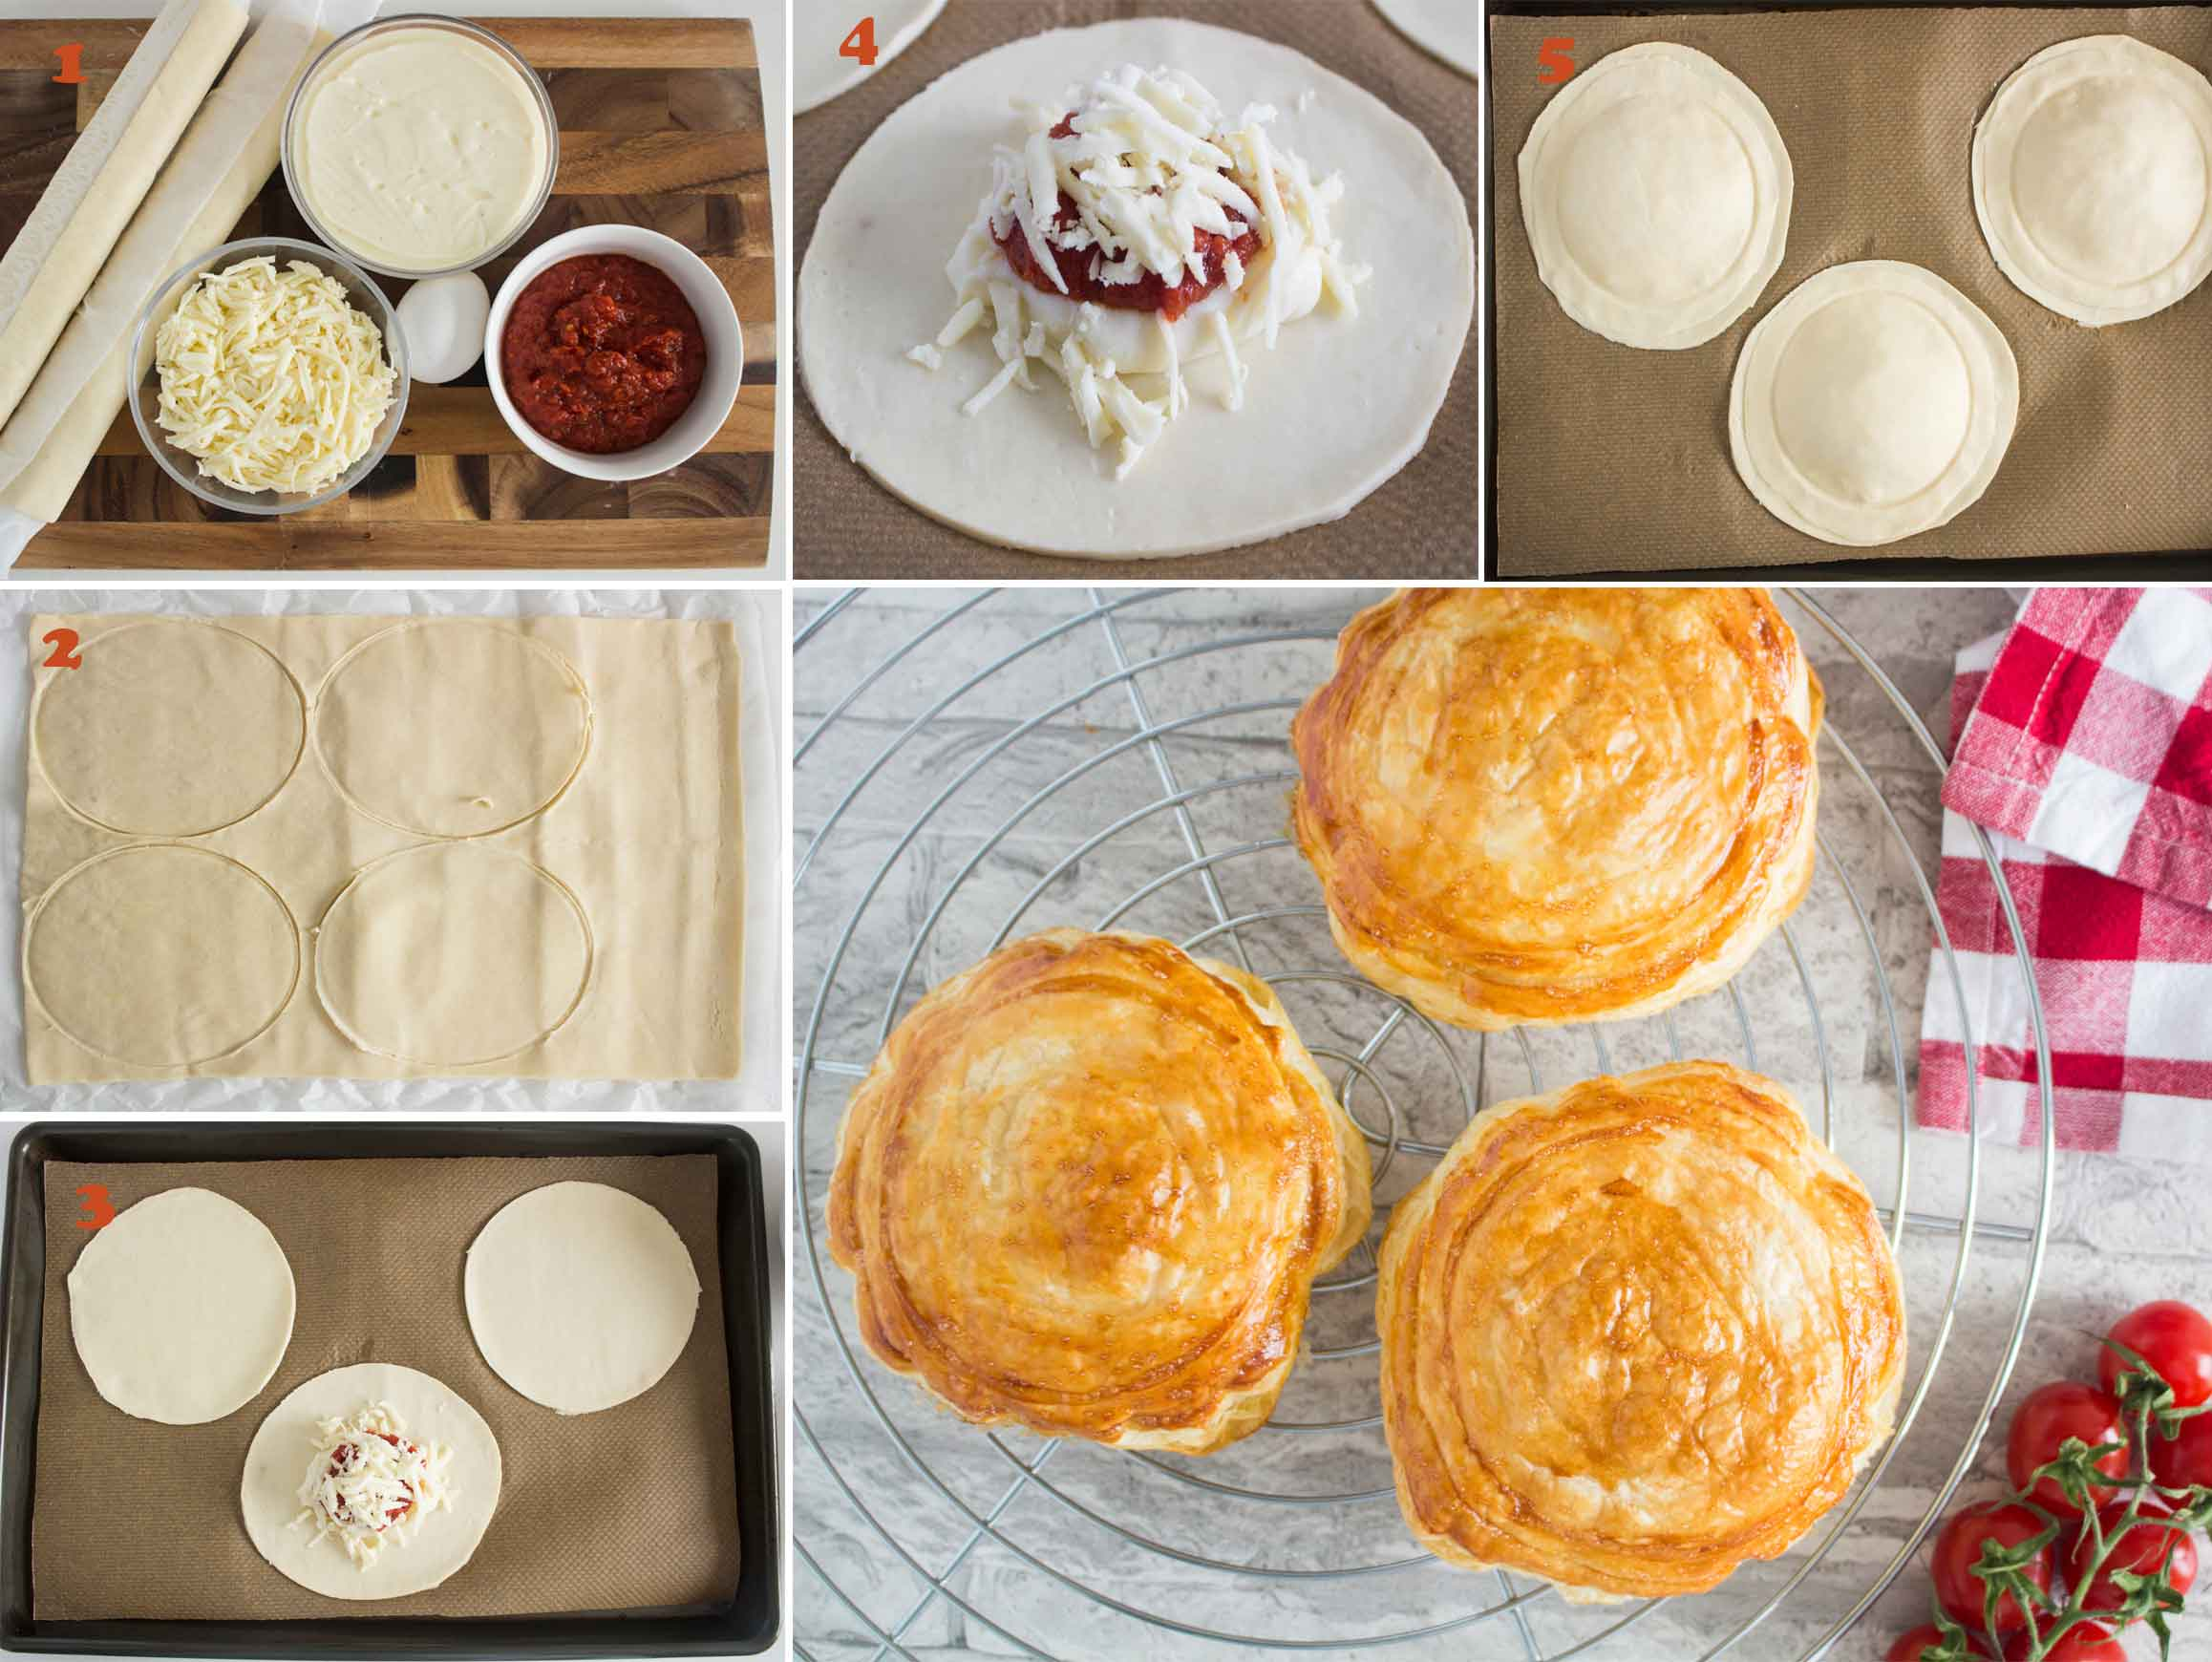 Collage of images showing how to make Tomato and Mozzarella Pastry (Rustico Leccese).